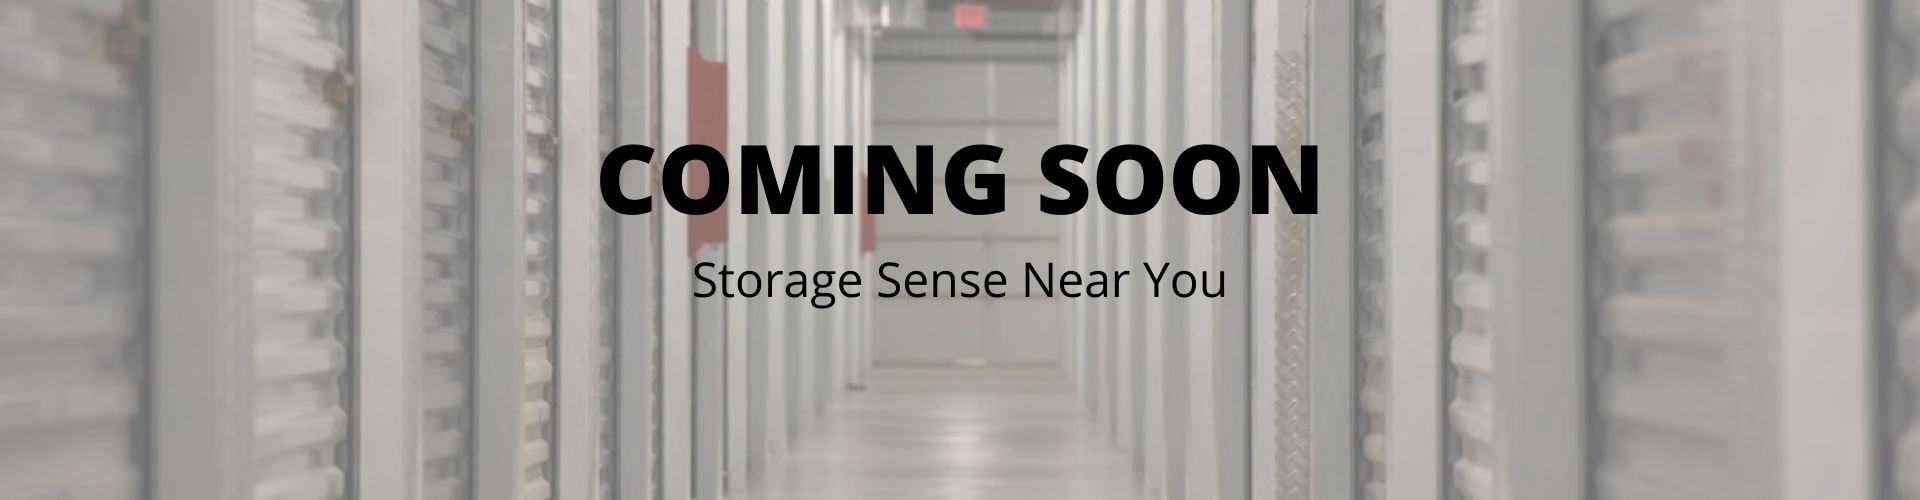 Storage Sense Coming Soon